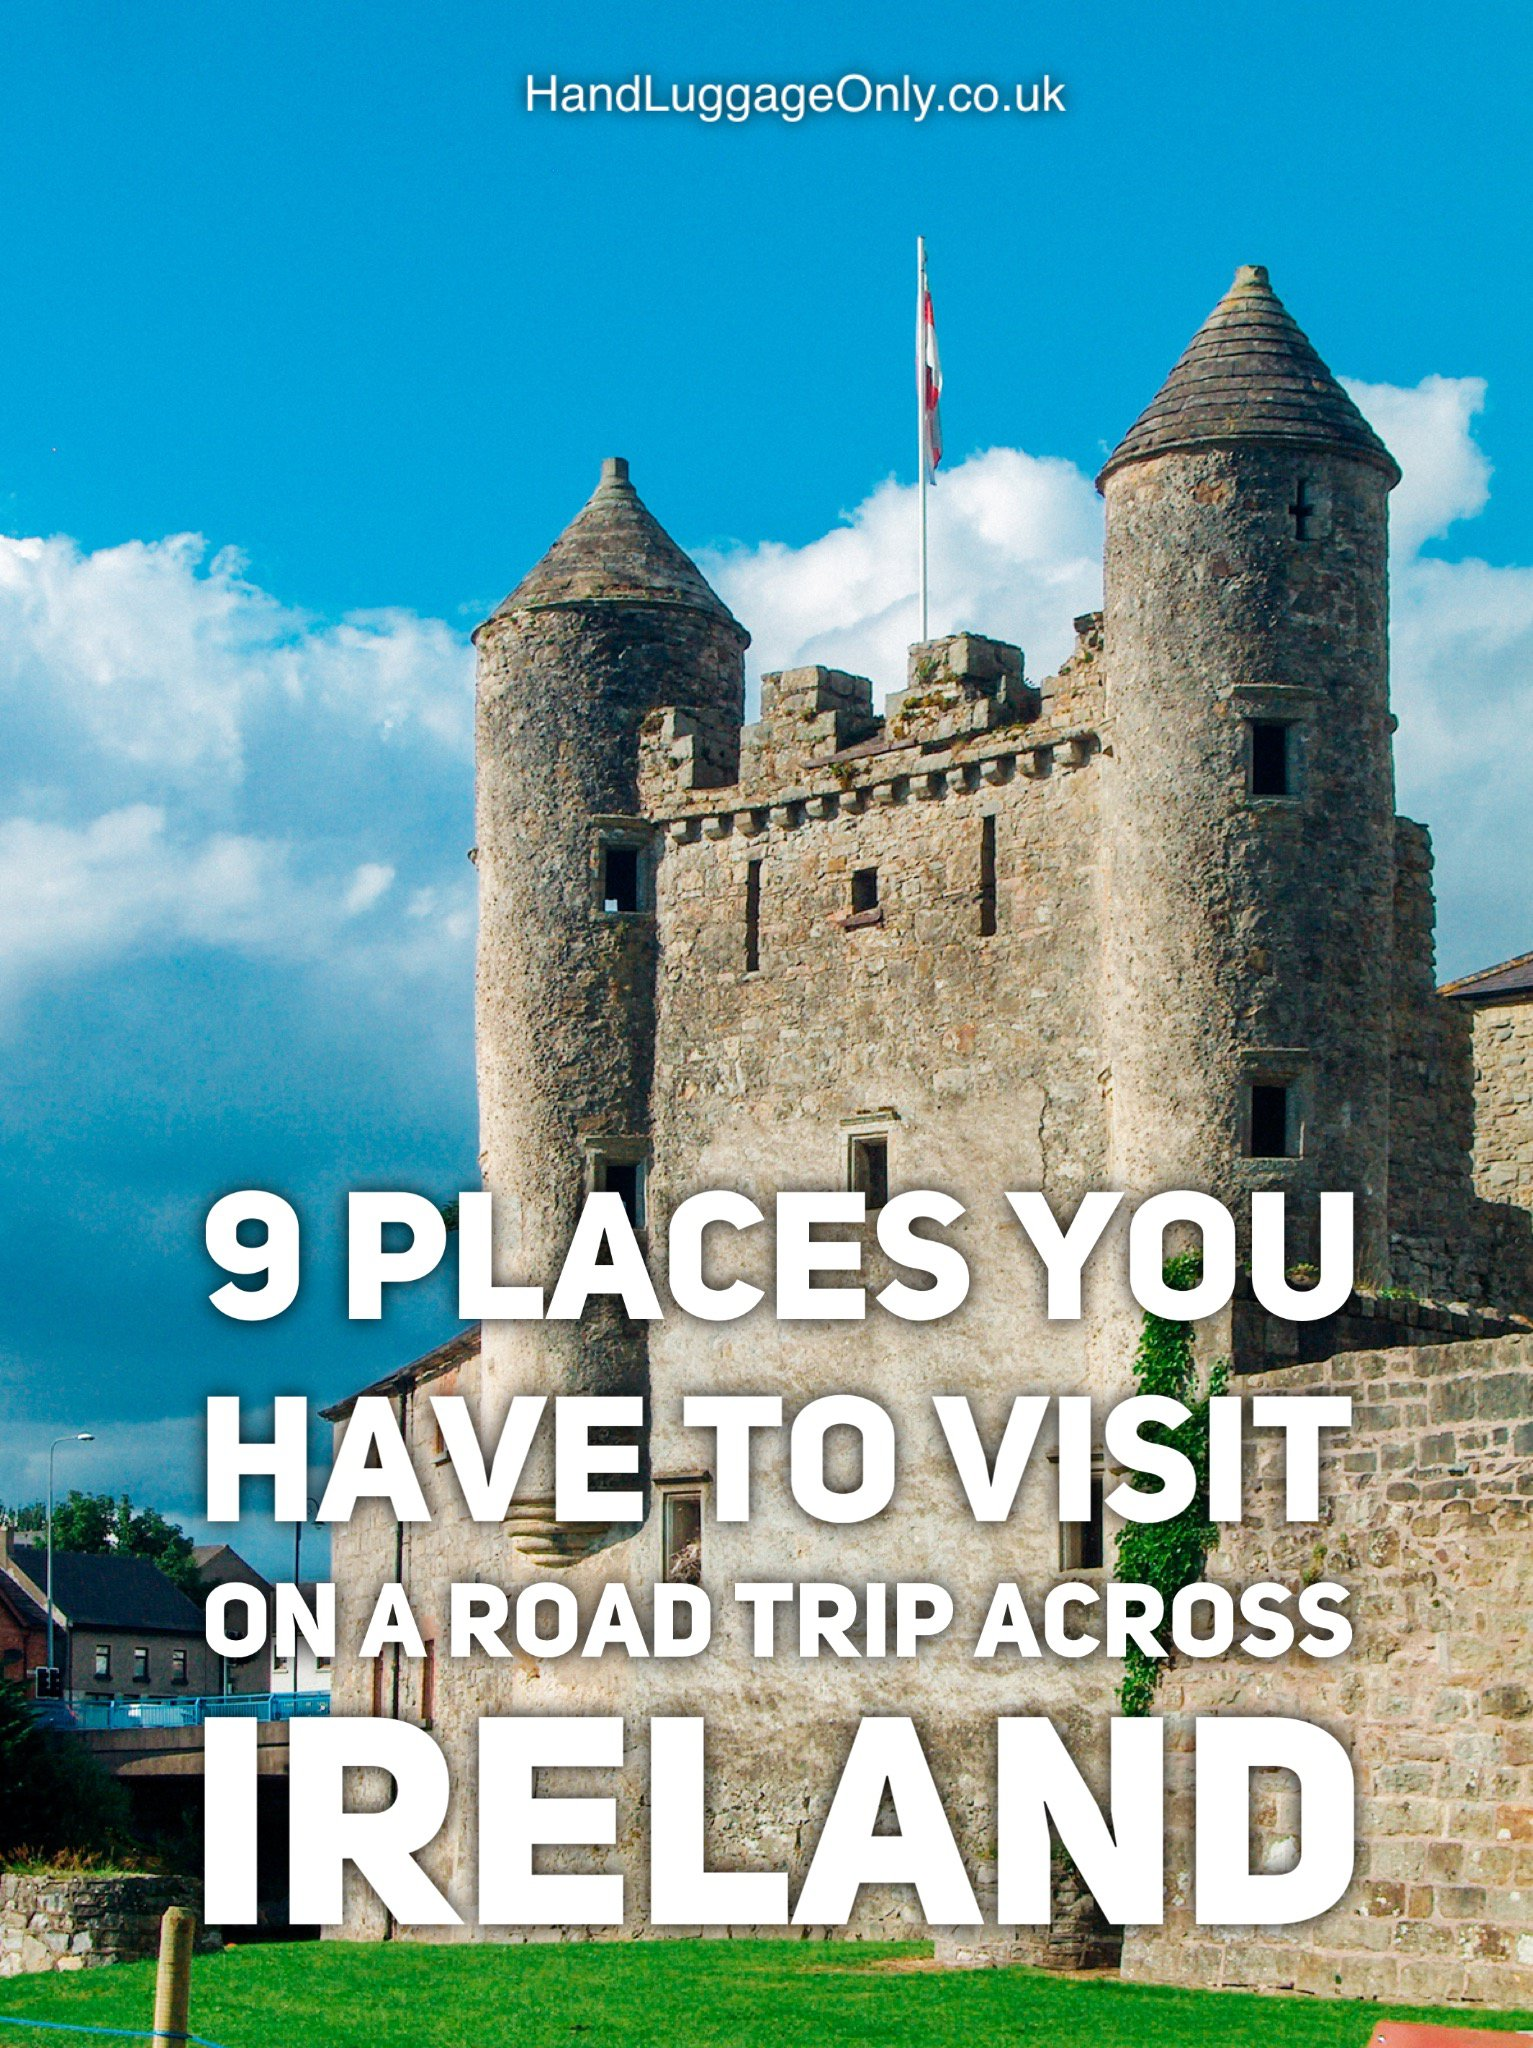 9 Places You Have To Visit On A Road Trip Across Ireland (1)